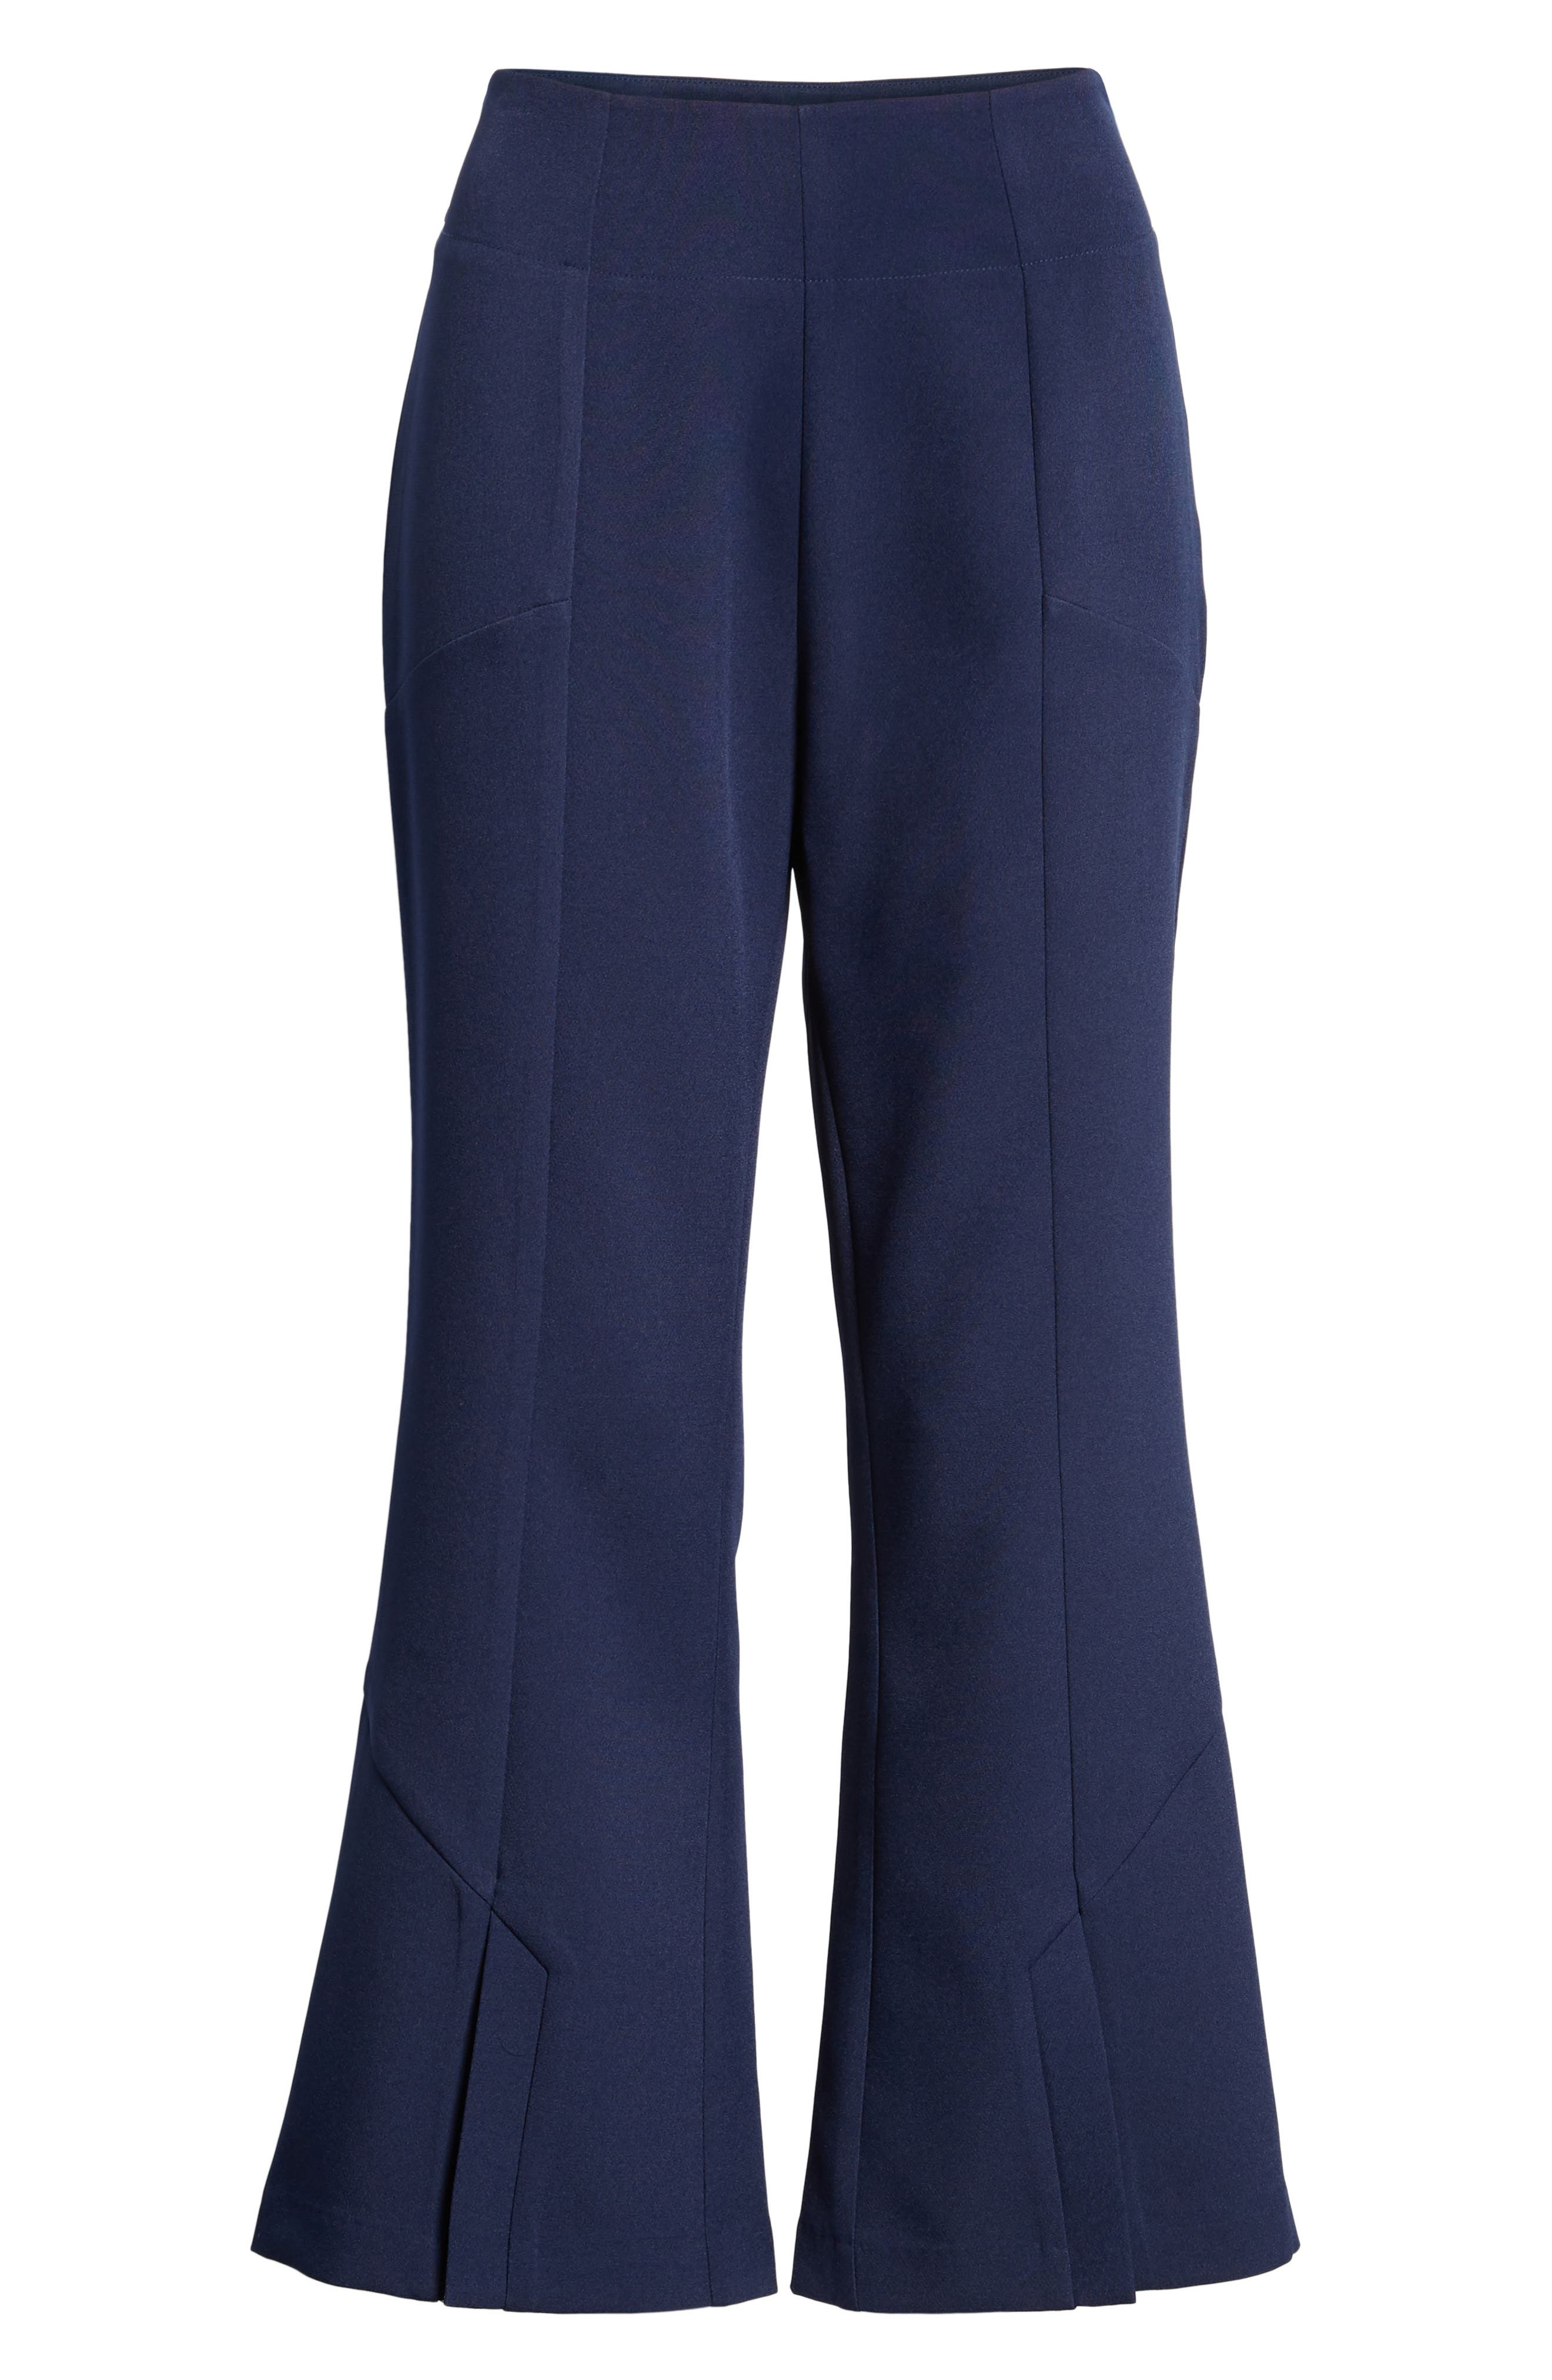 High Waist Crop Flare Pants,                             Alternate thumbnail 7, color,